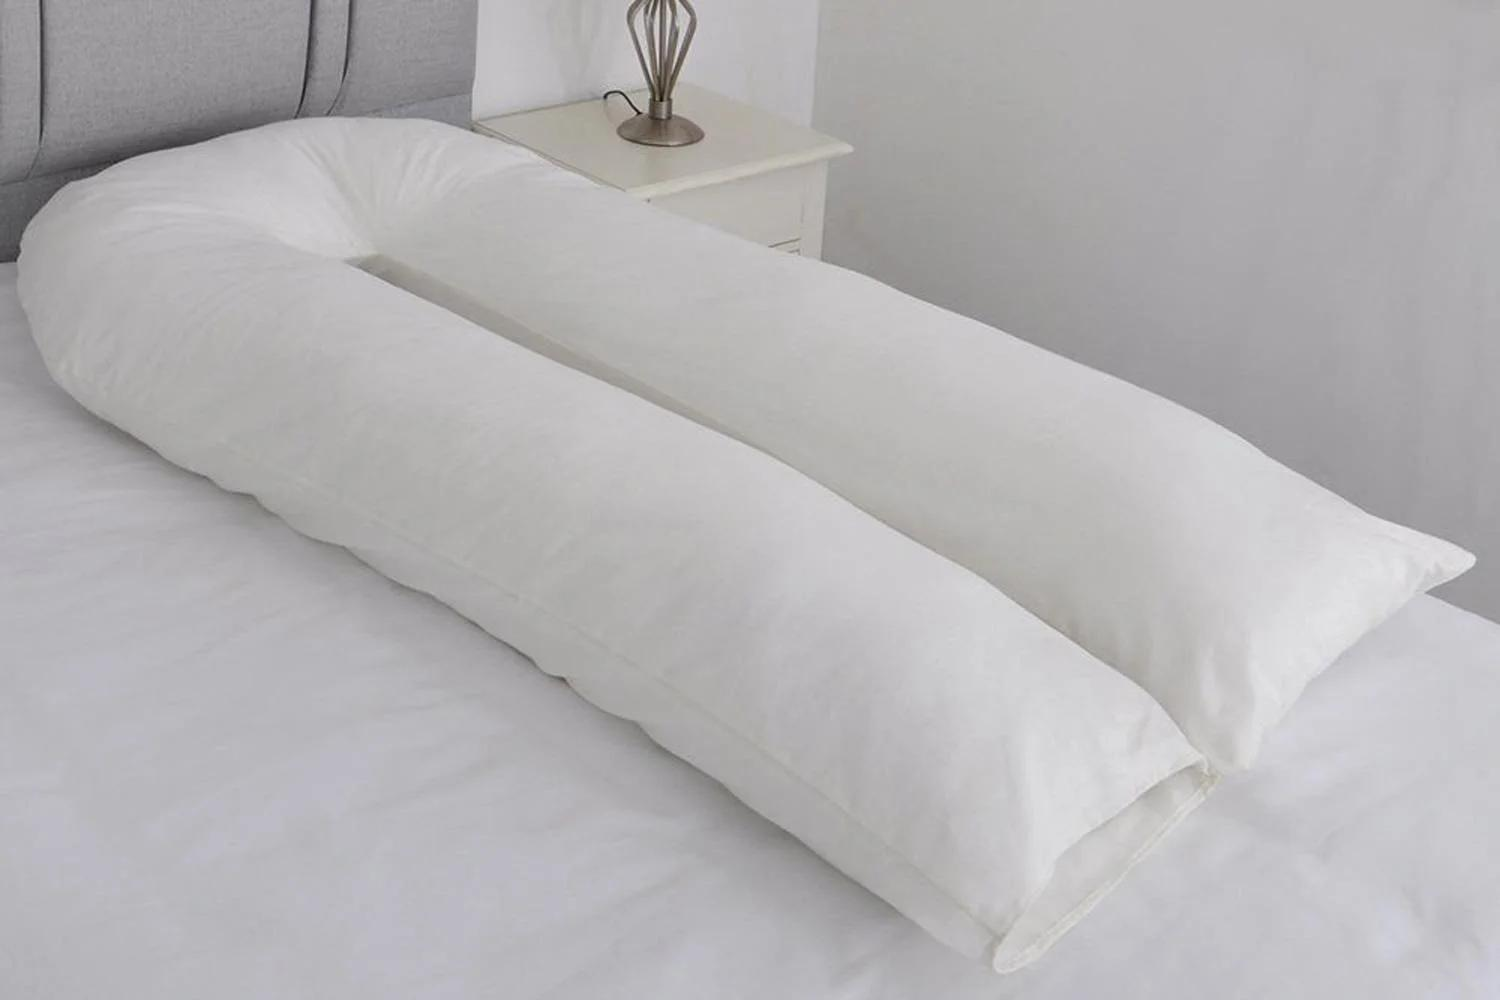 best body pillows in the uk 2021